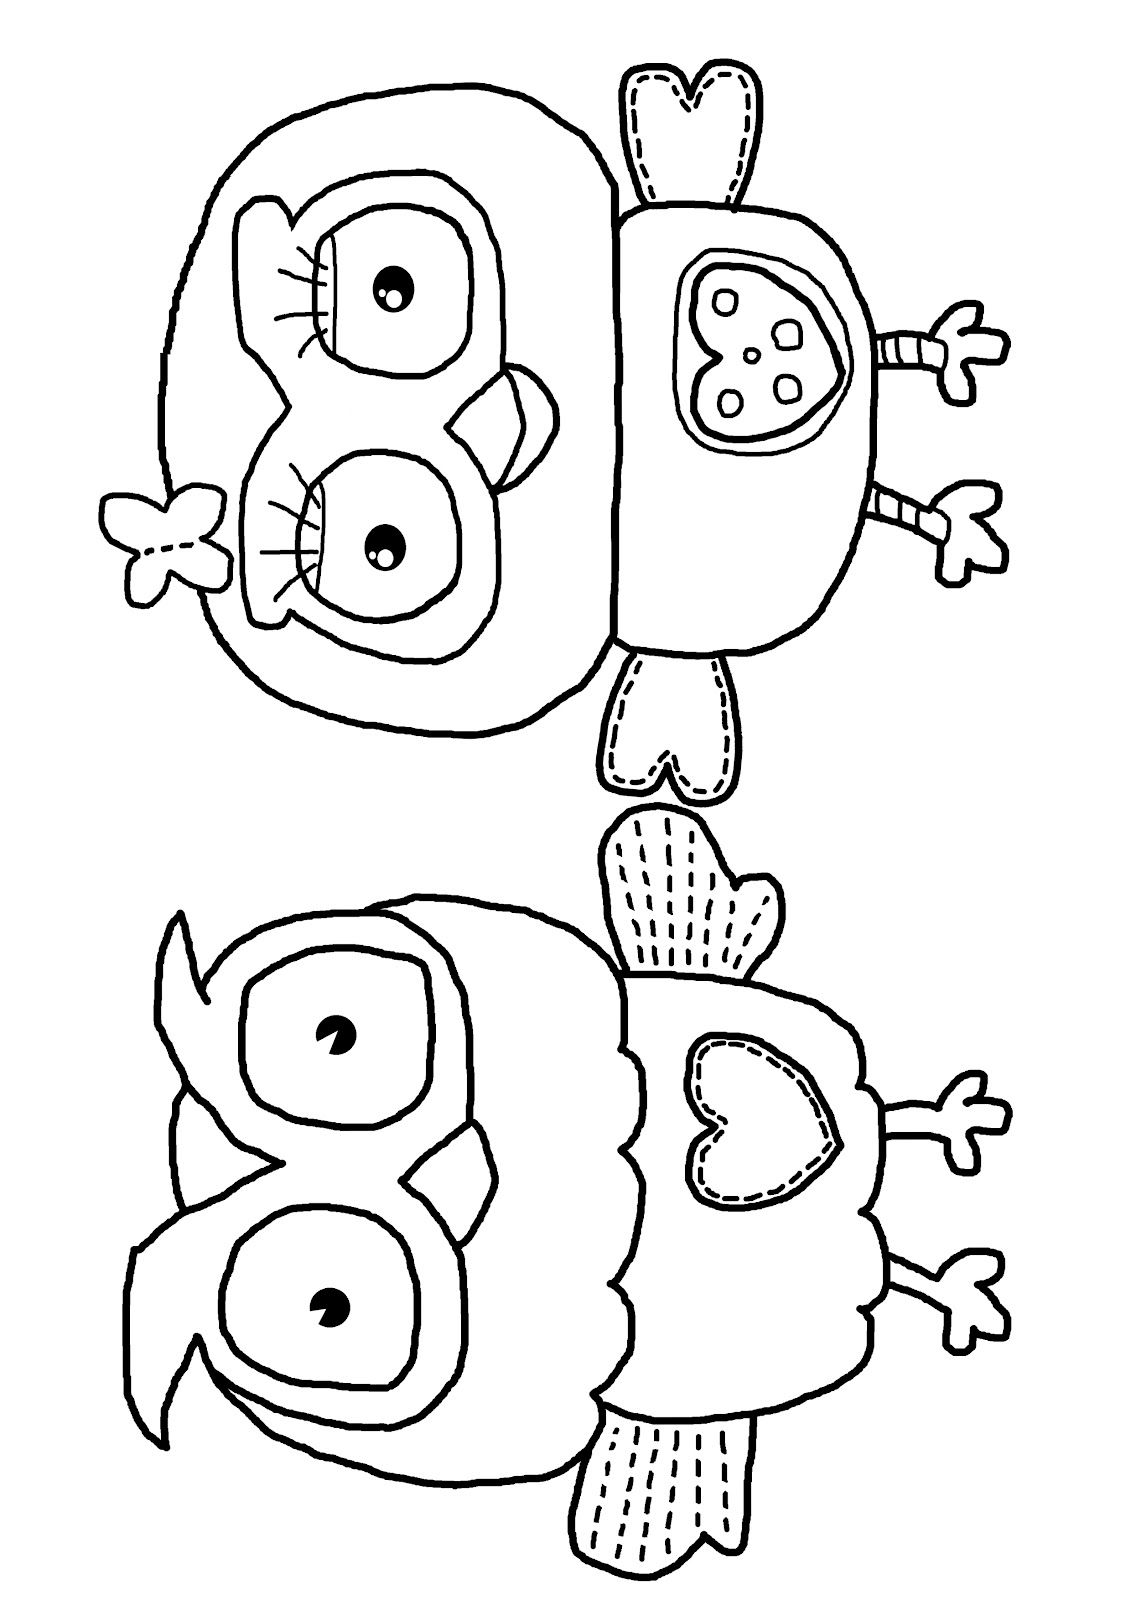 Milk Eyes: Giggle And Hoot Free Colouring Coloring Page